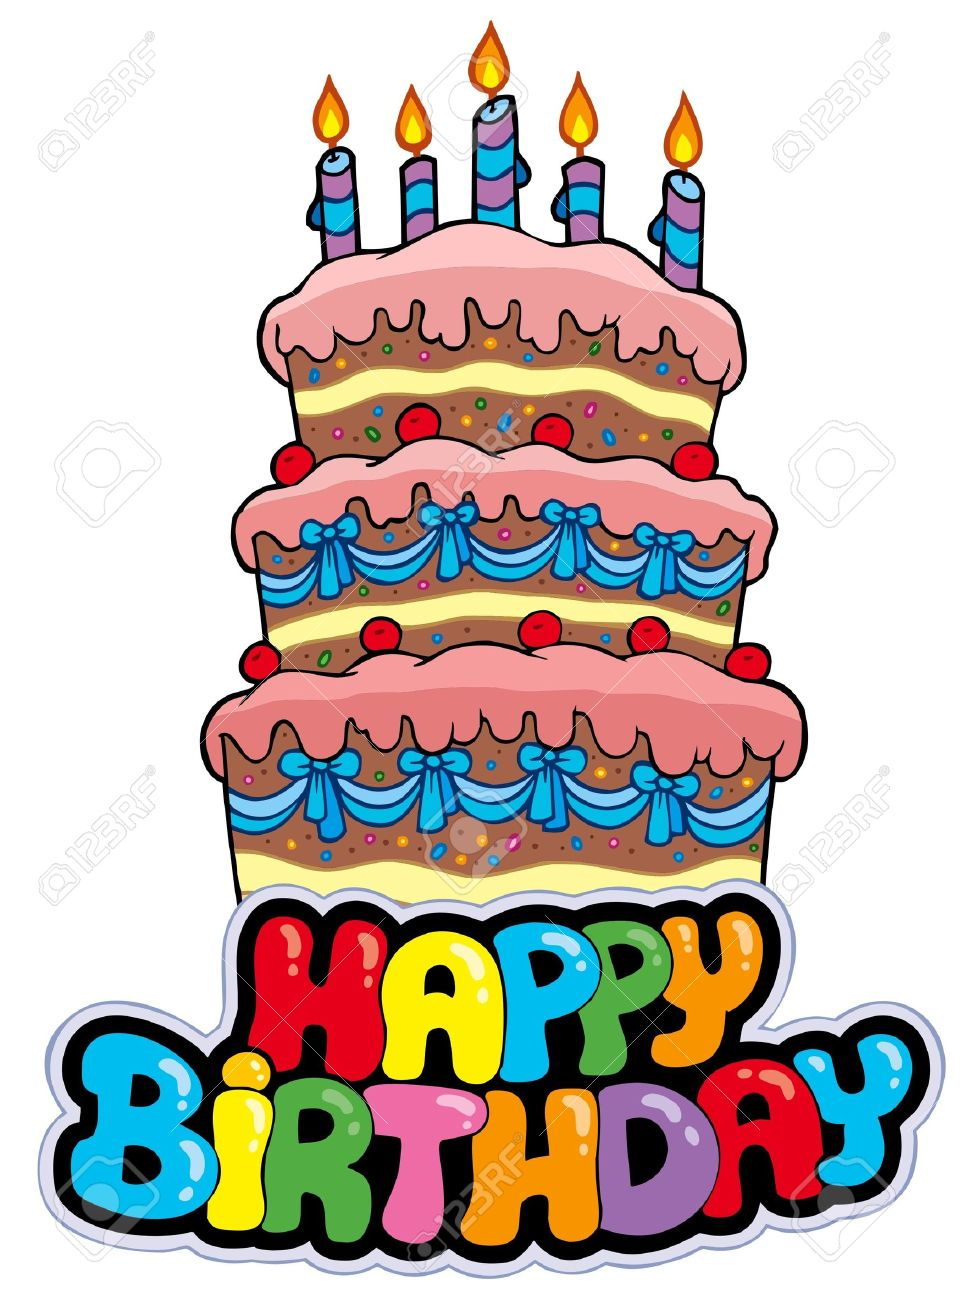 Happy Birthday Sign With Tall Cake Illustration Royalty Free